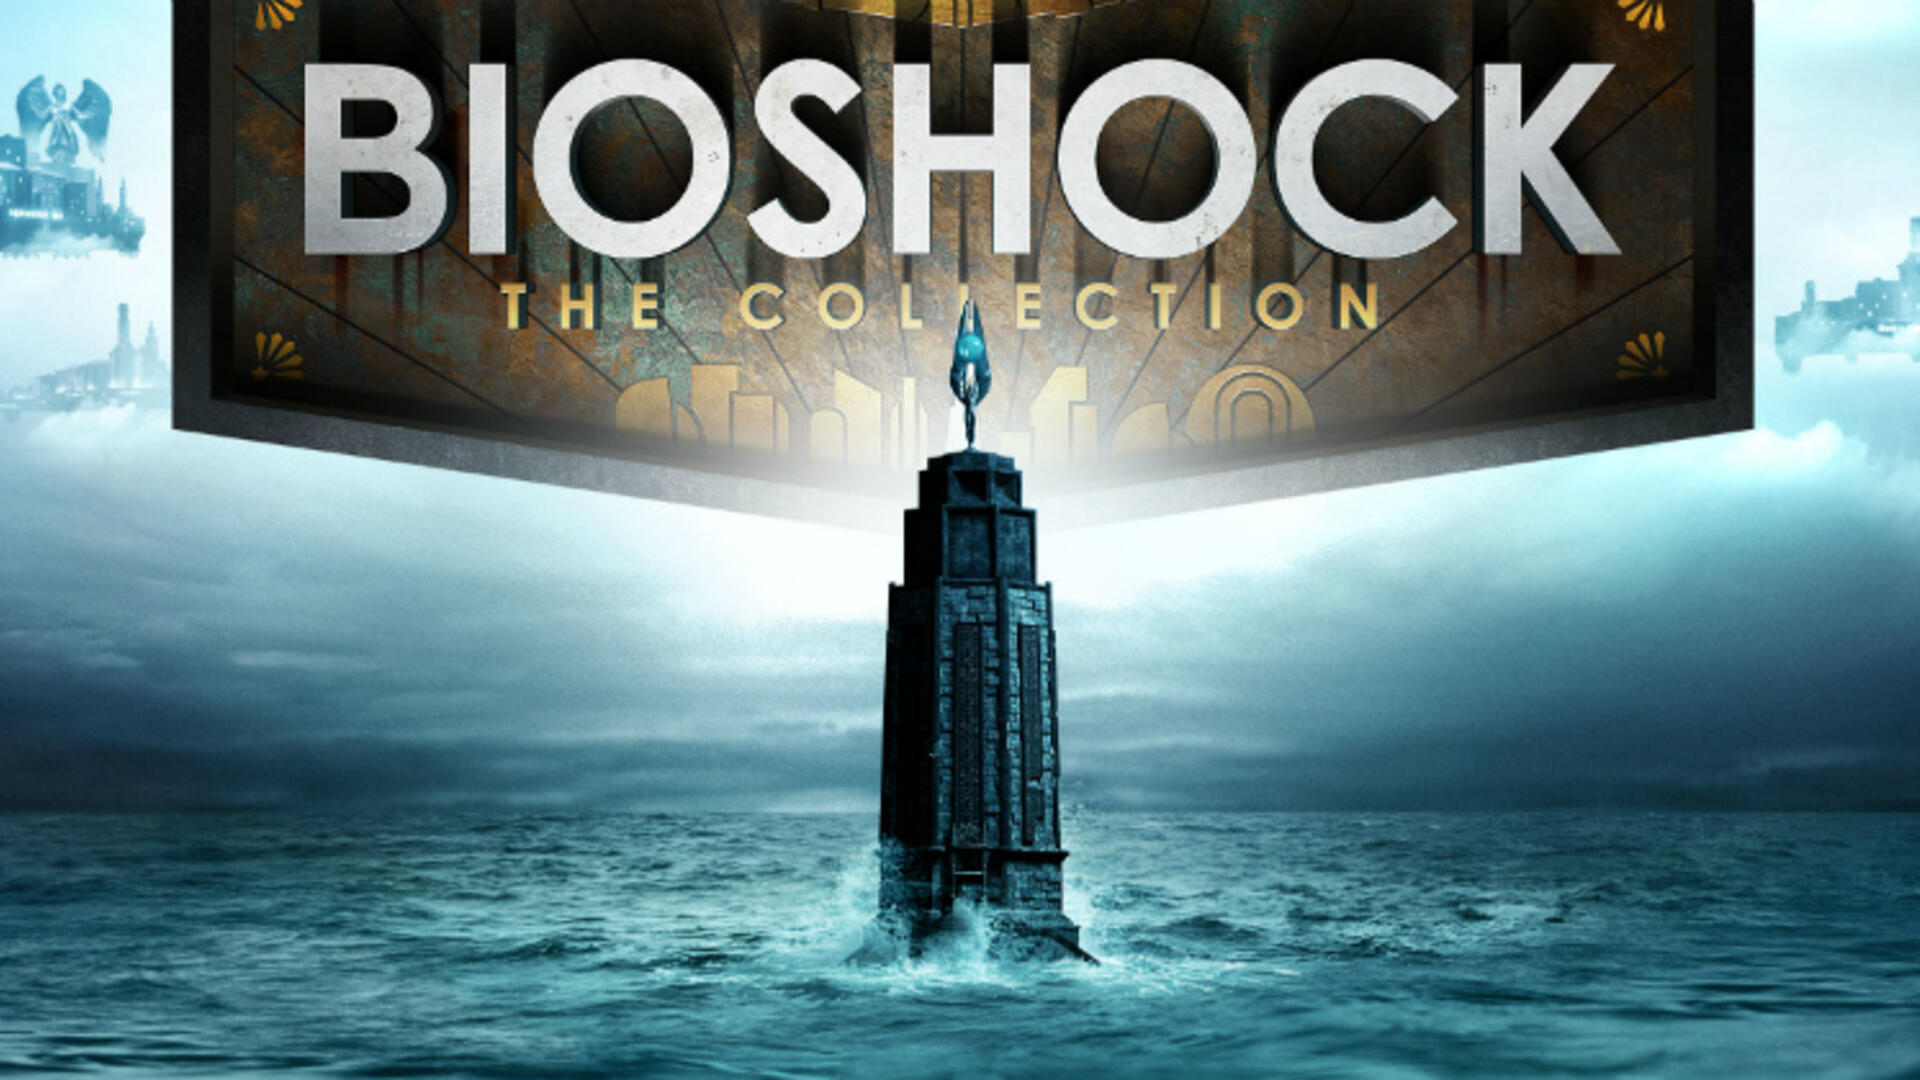 Bioshock: The Collection Brings Series to PS4 and Xbox One on Sept 13